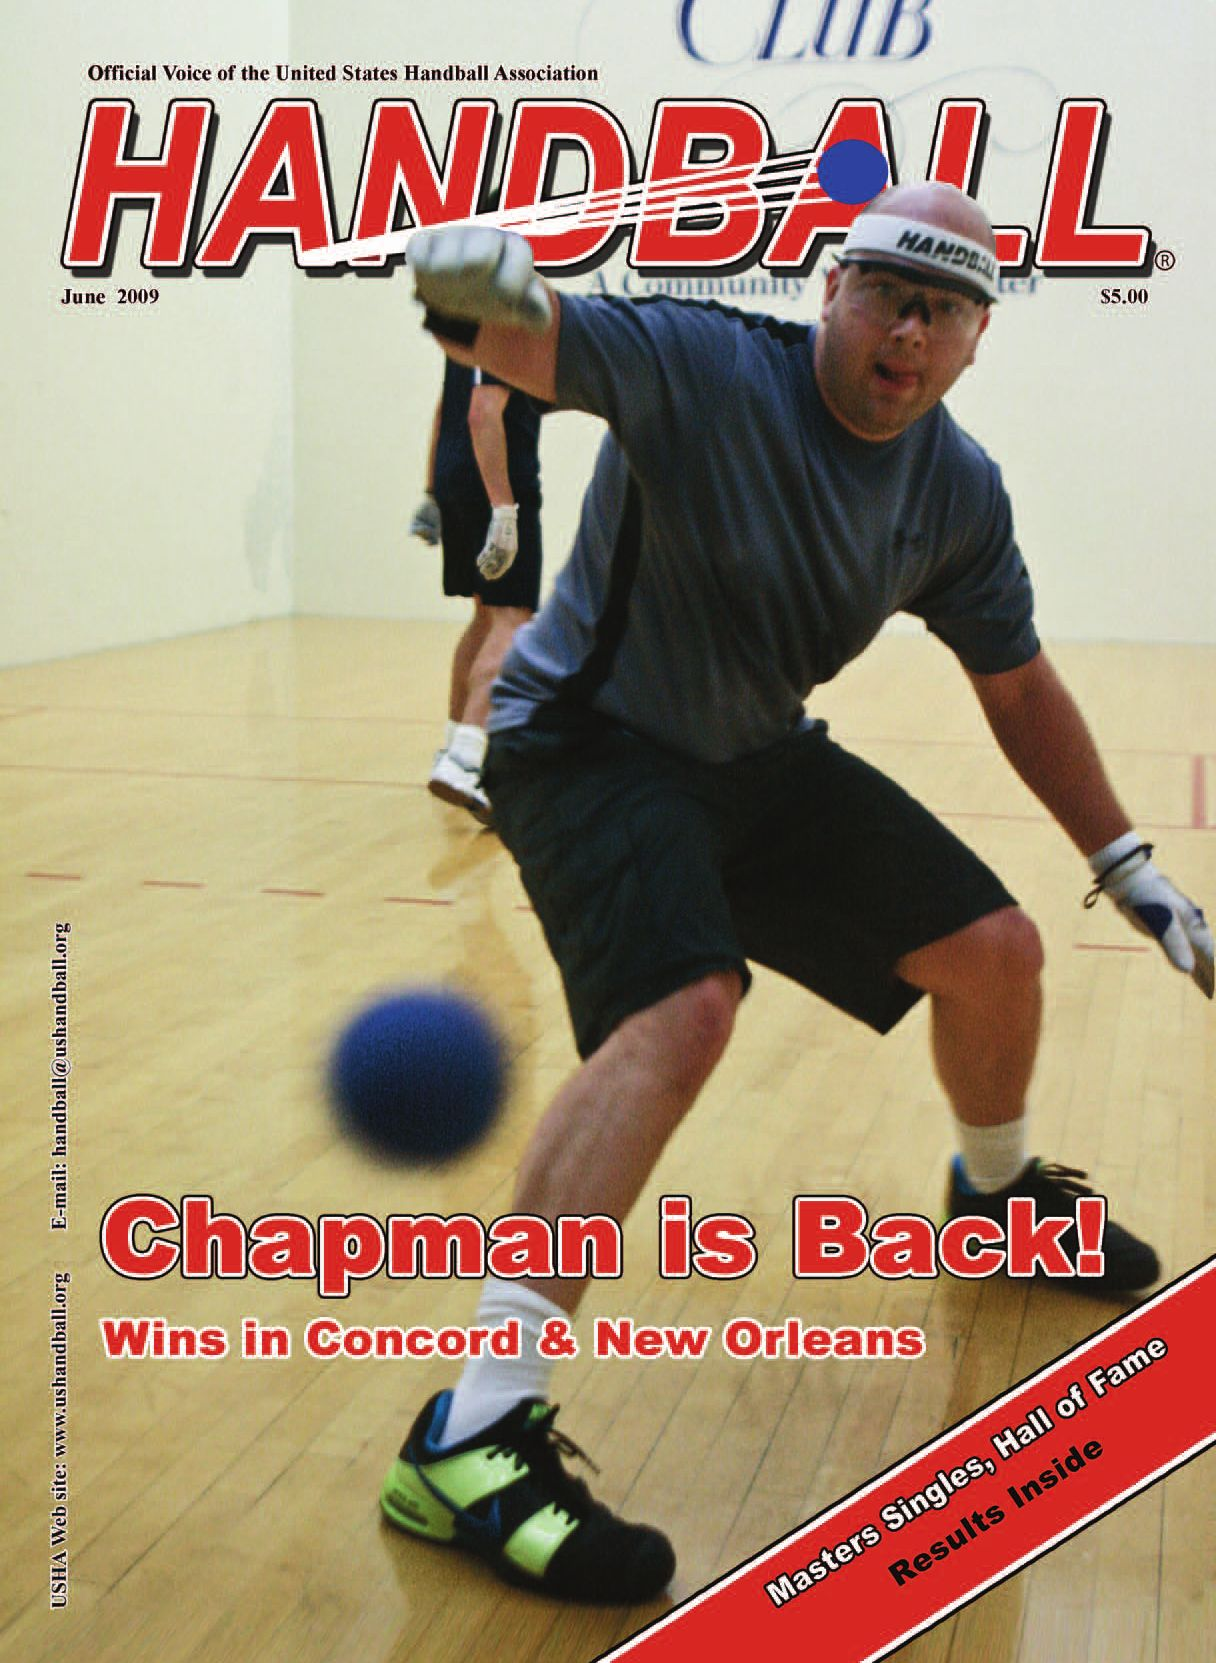 Handball June 09 by bryan tler - issuu